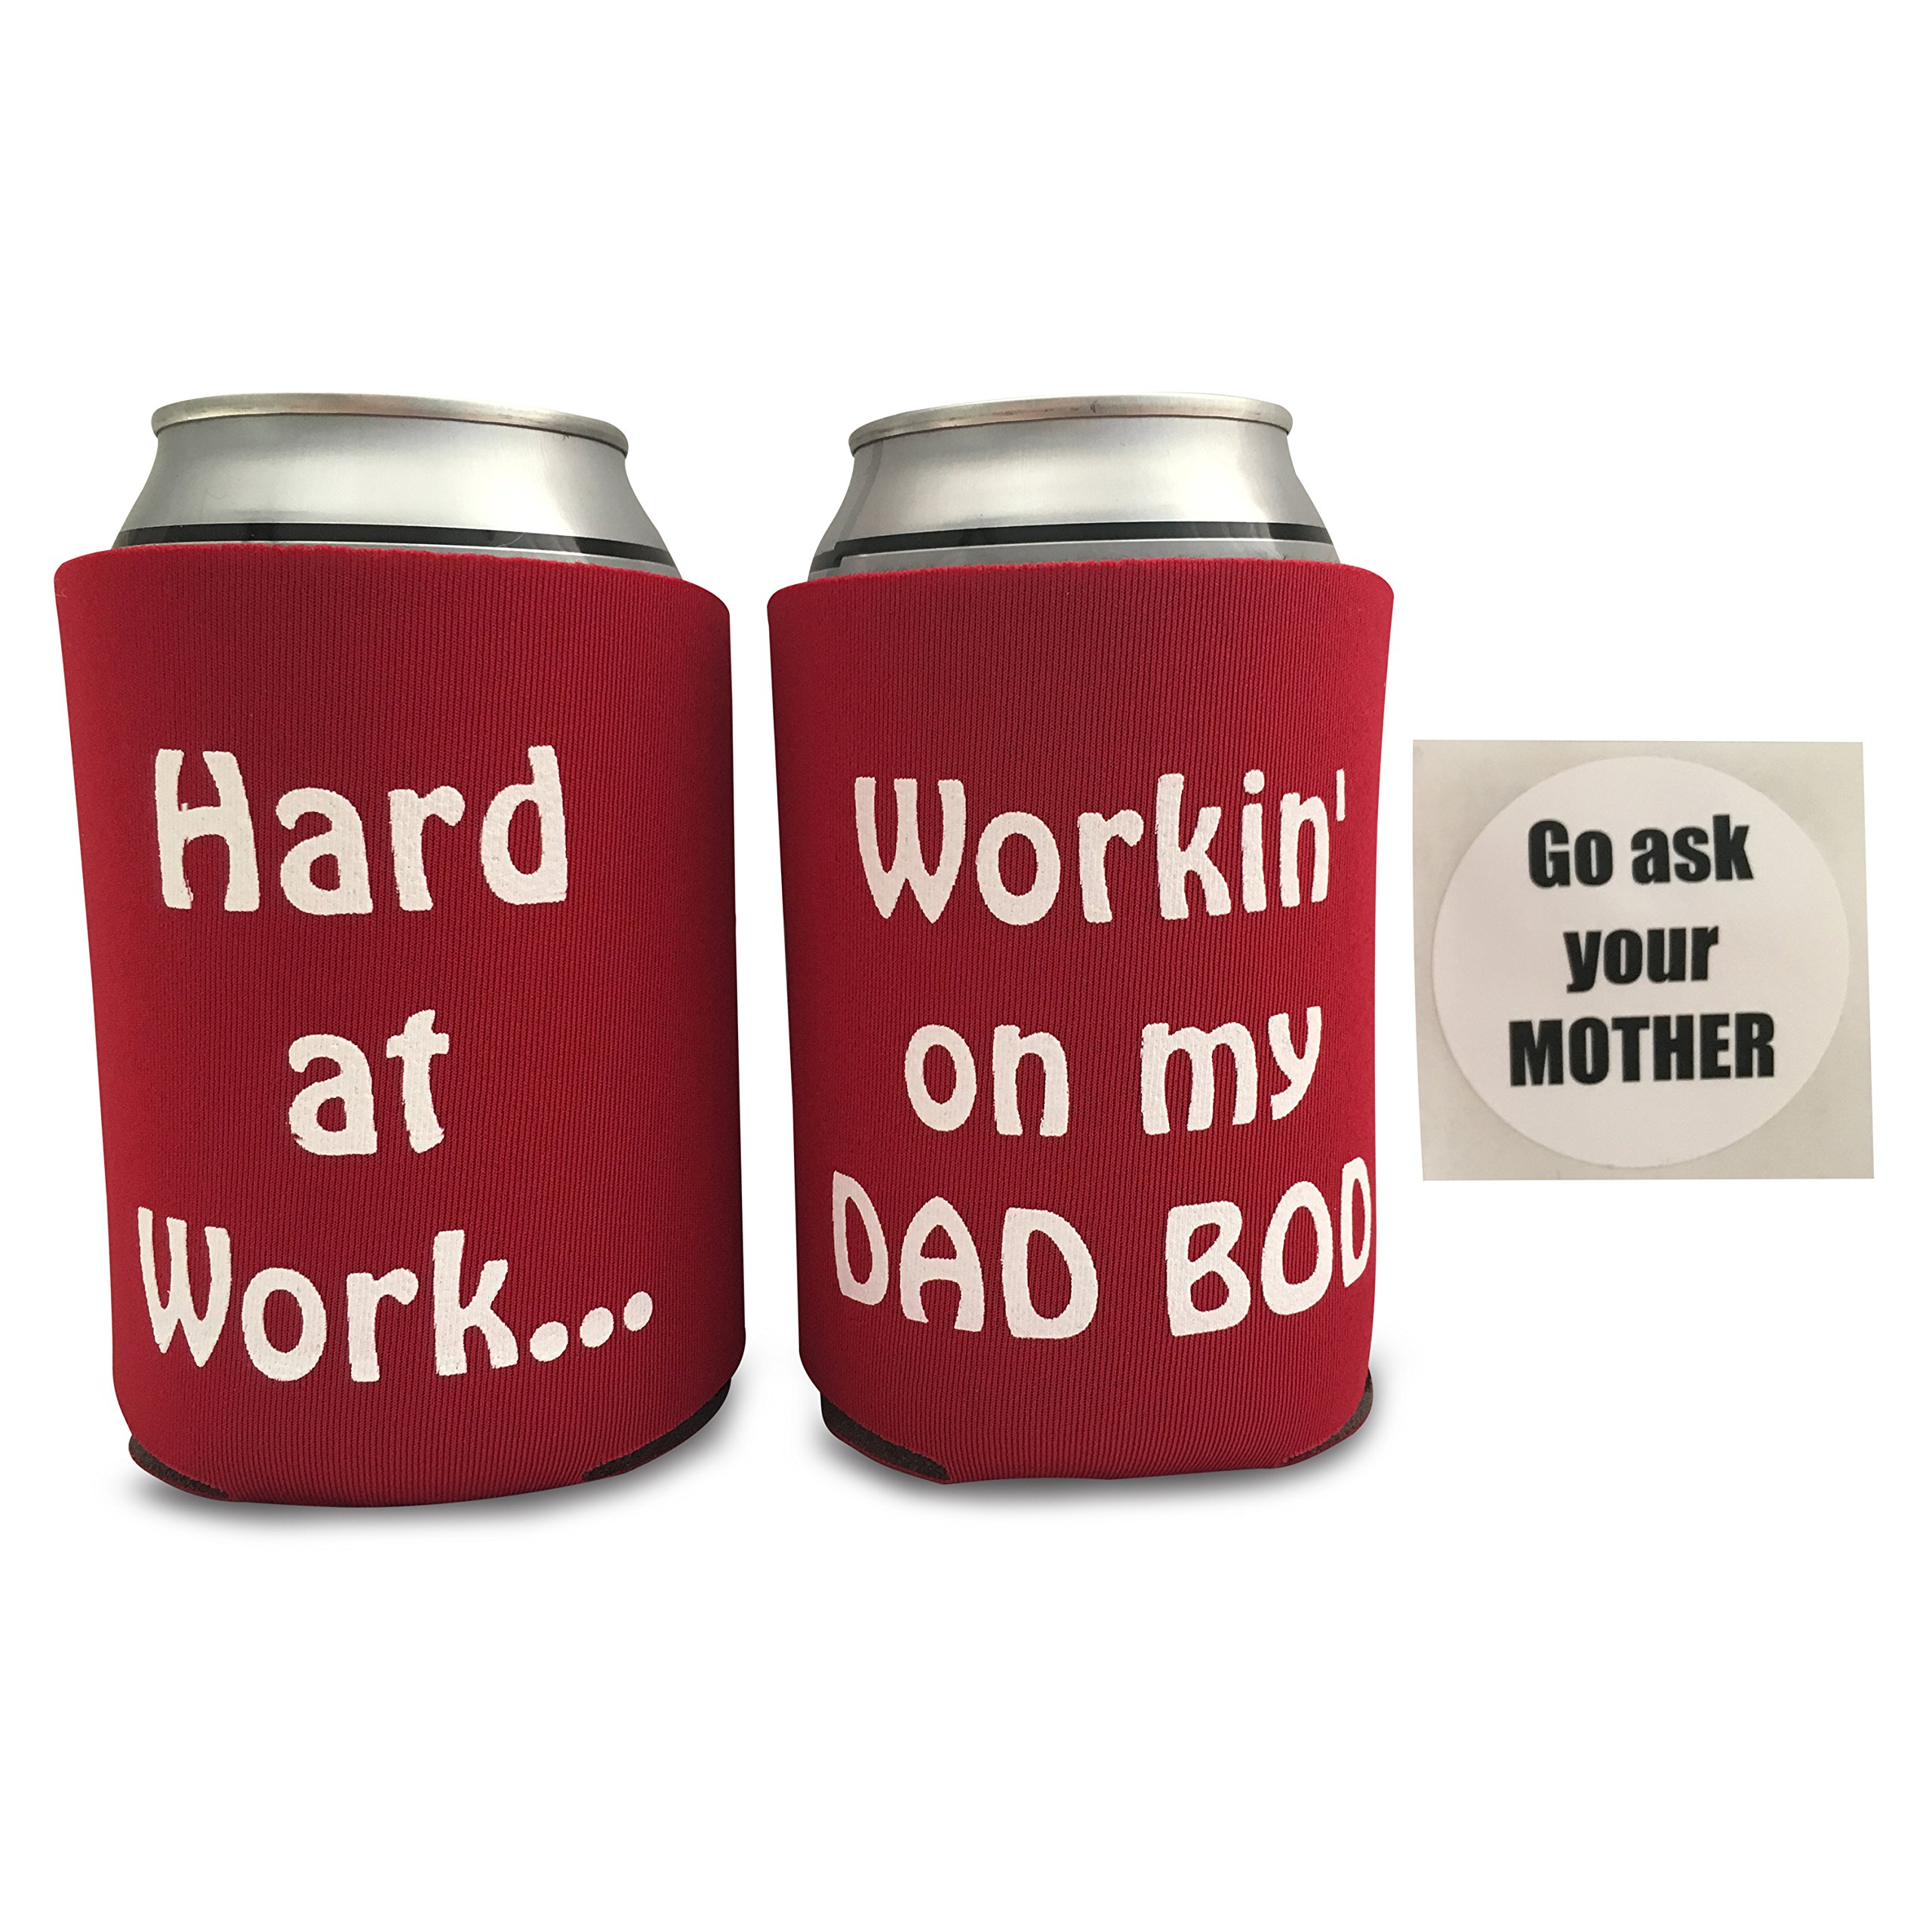 Father's Day Gift from Daughter Funny Coolie Bundle | Hard at Work Workin' on my Dad Bod (Red)